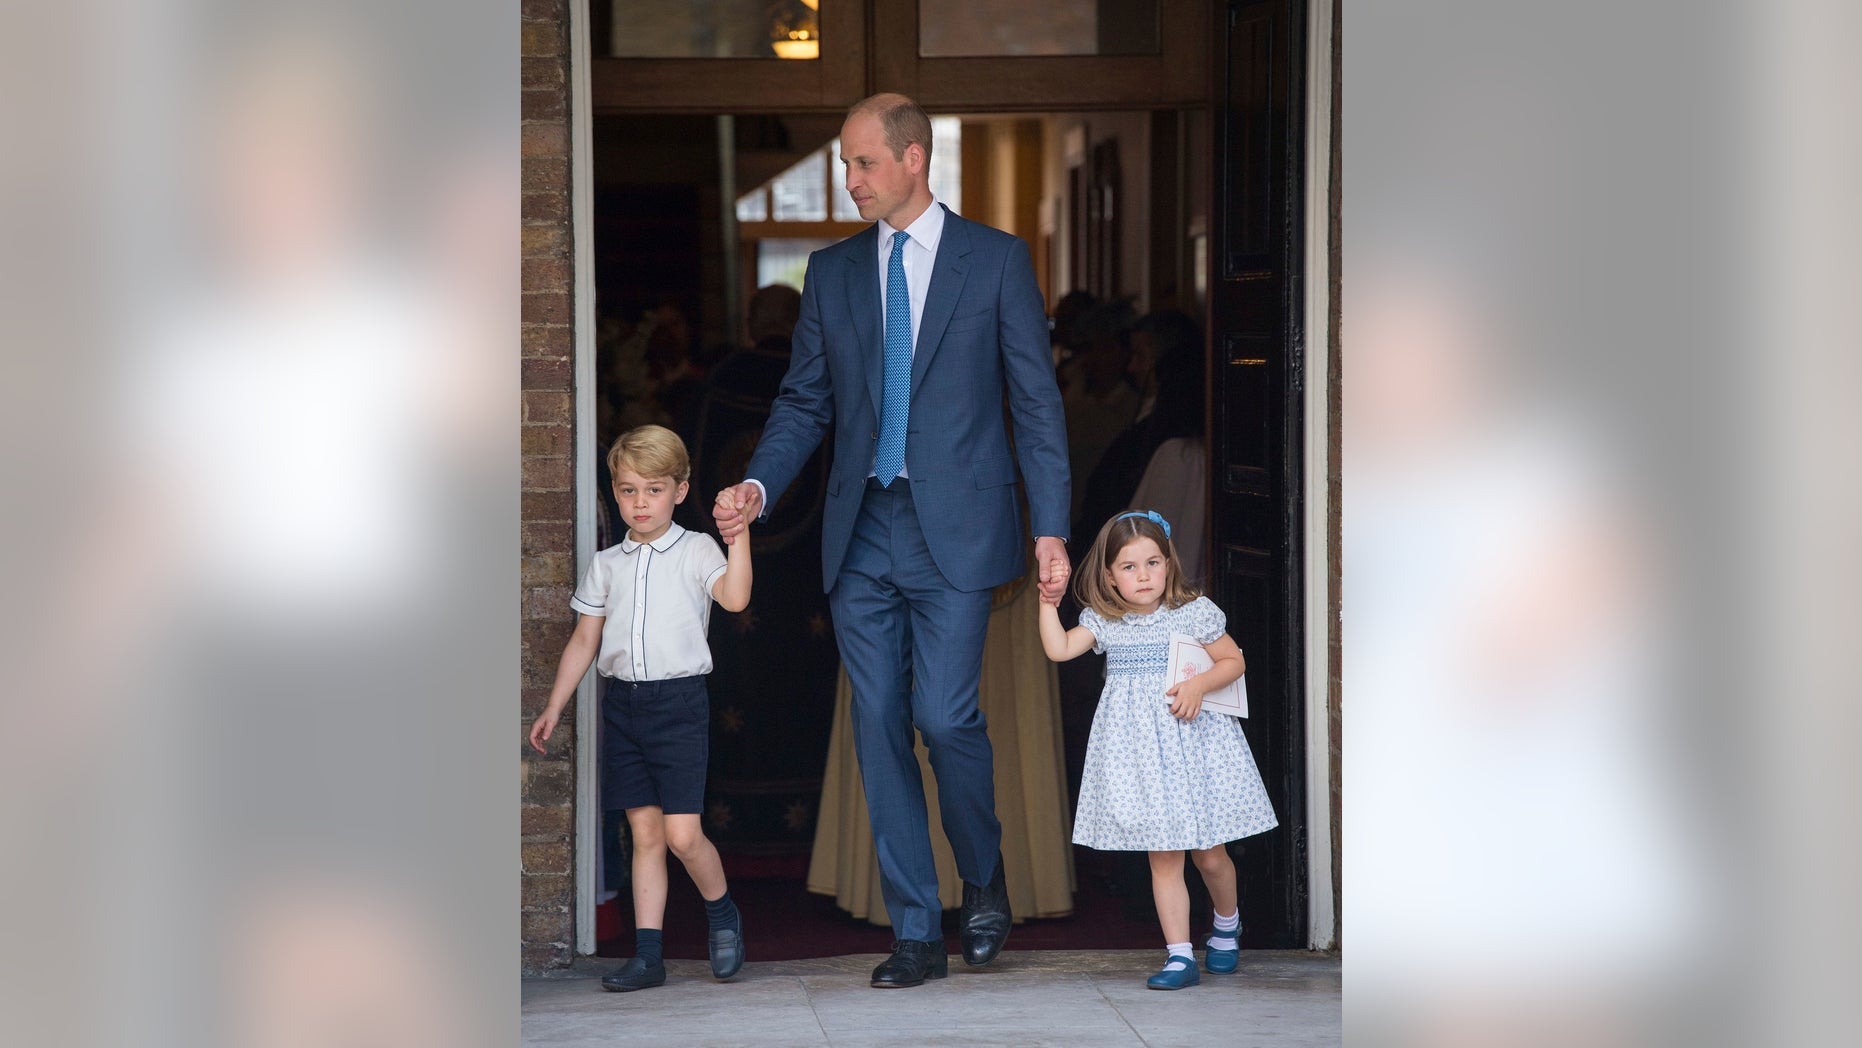 Britain's Prince William with his children Prince George and Princess Charlotte leave after the christening service of Prince Louis at the Chapel Royal, St James's Palace, London, Monday, July 9, 2018. (Dominic Lipinski/Pool Photo via AP)